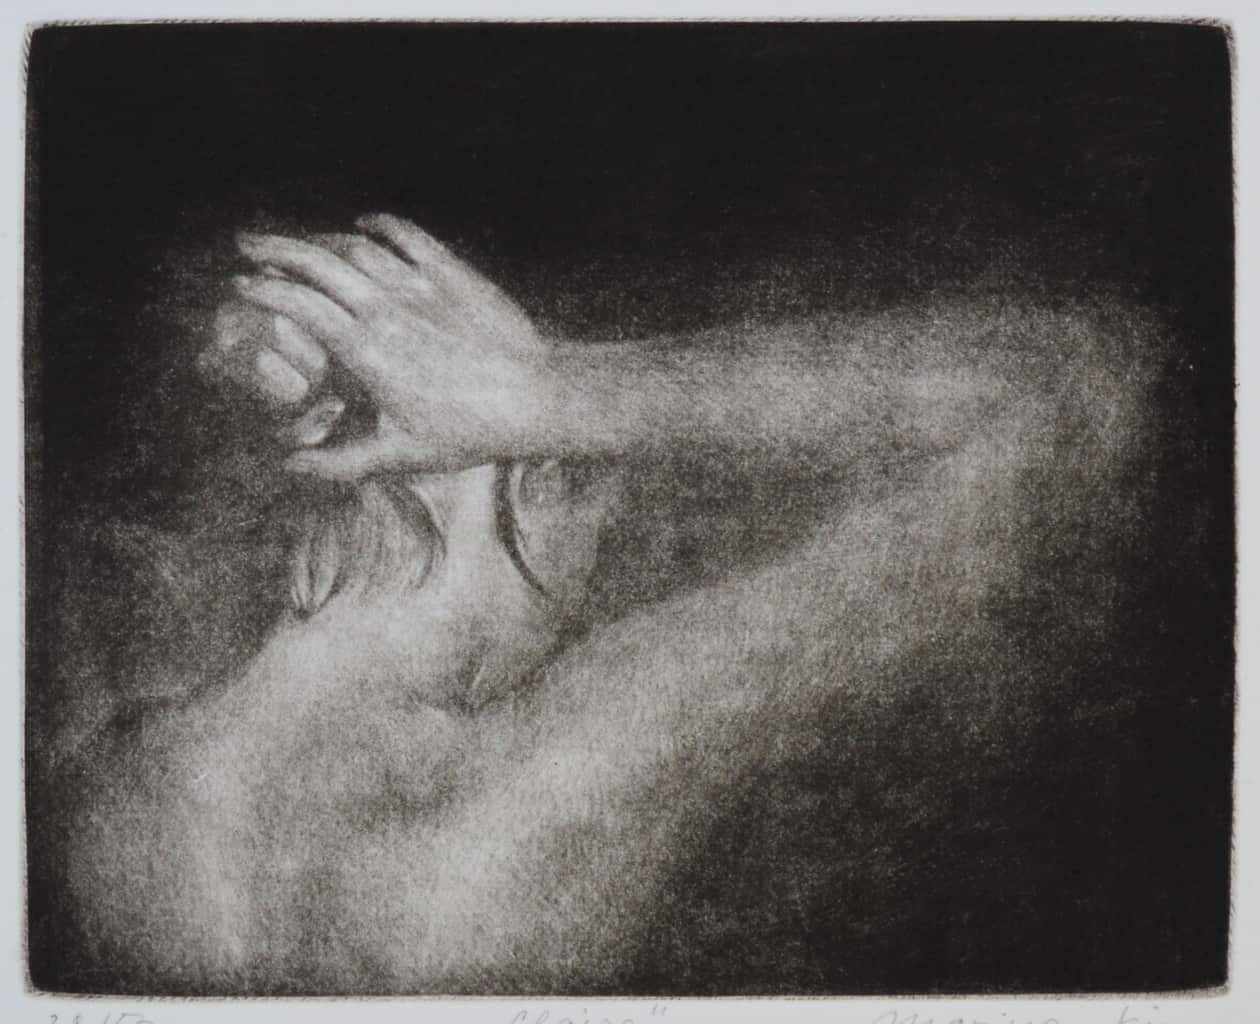 """""""Claire"""" - picture of a girl doing her hair up, against a black background. Original print mezzotint by painter-printmaker Marina Kim"""